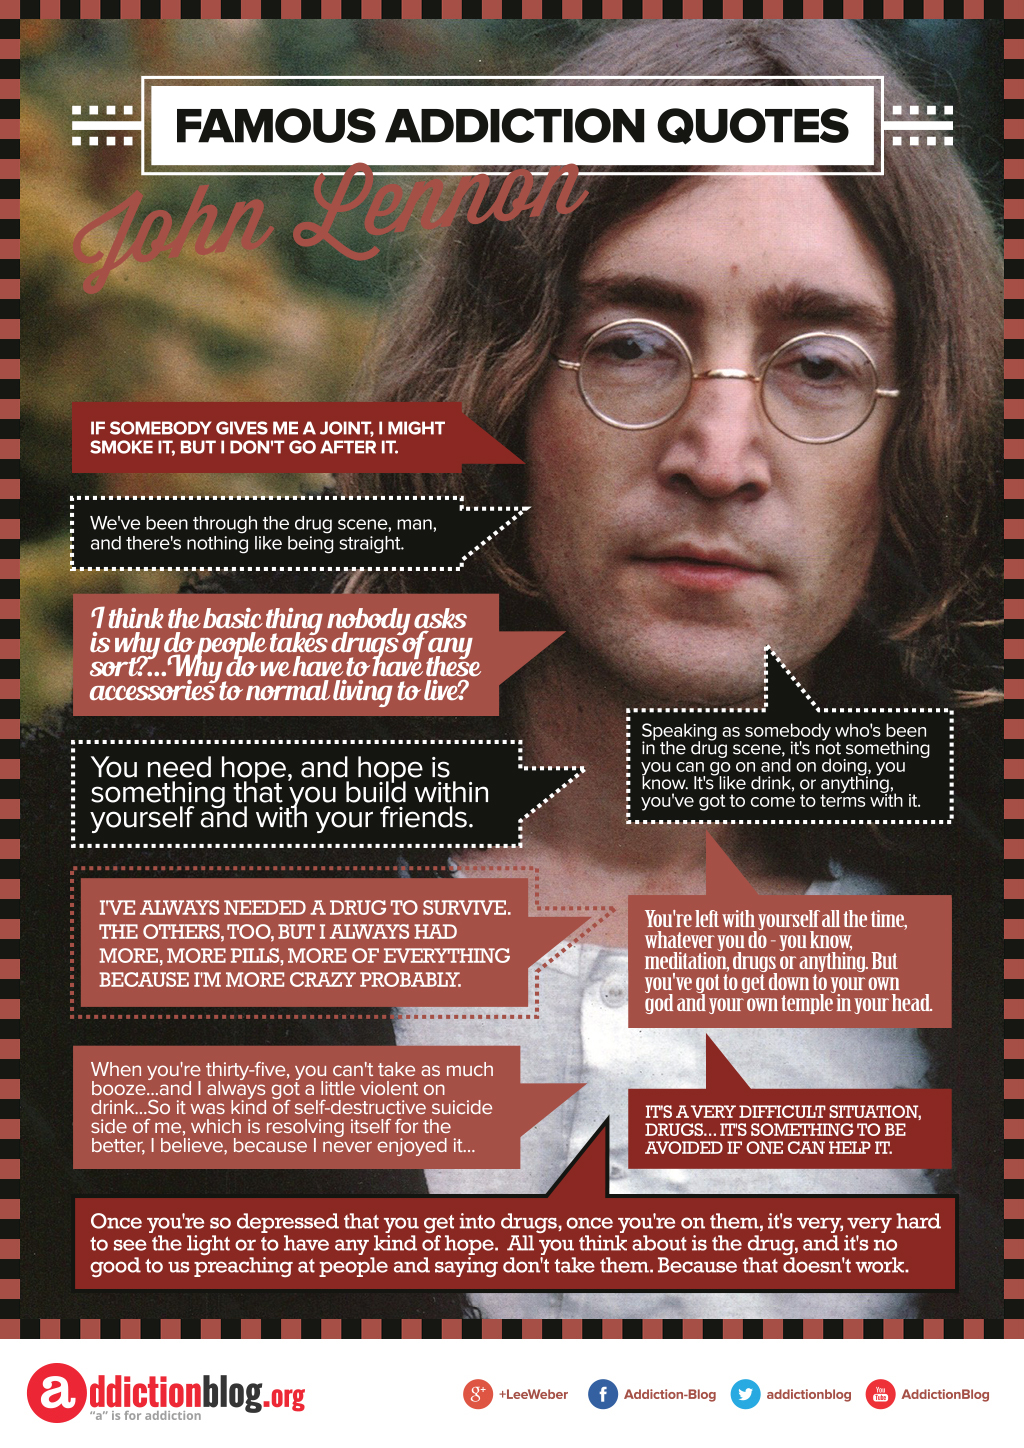 John Lennon quotes about drugs (INFOGRAPHIC)